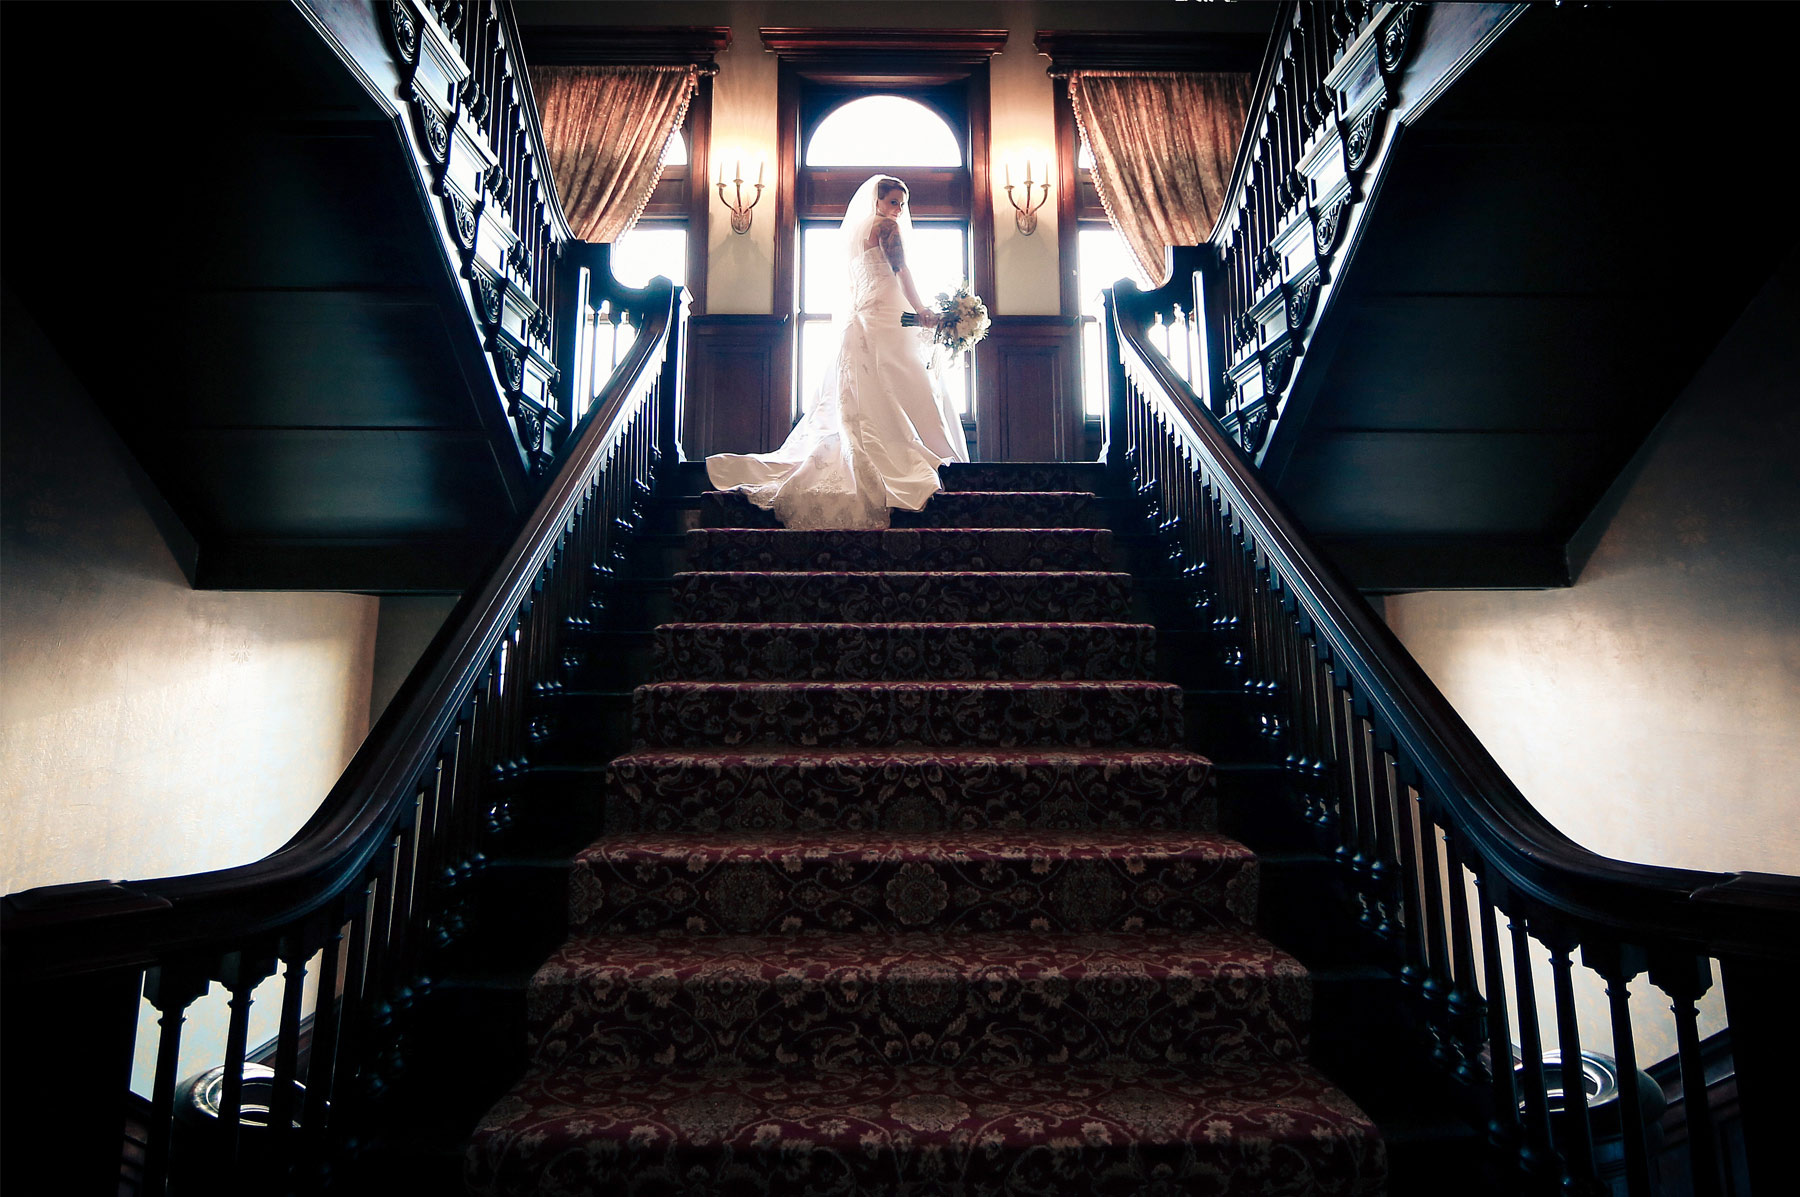 03-Minneapolis-Minnesota-Wedding-Photography-by-Vick-Photography-Semple-Mansion-Ariel-and-Jared.jpg